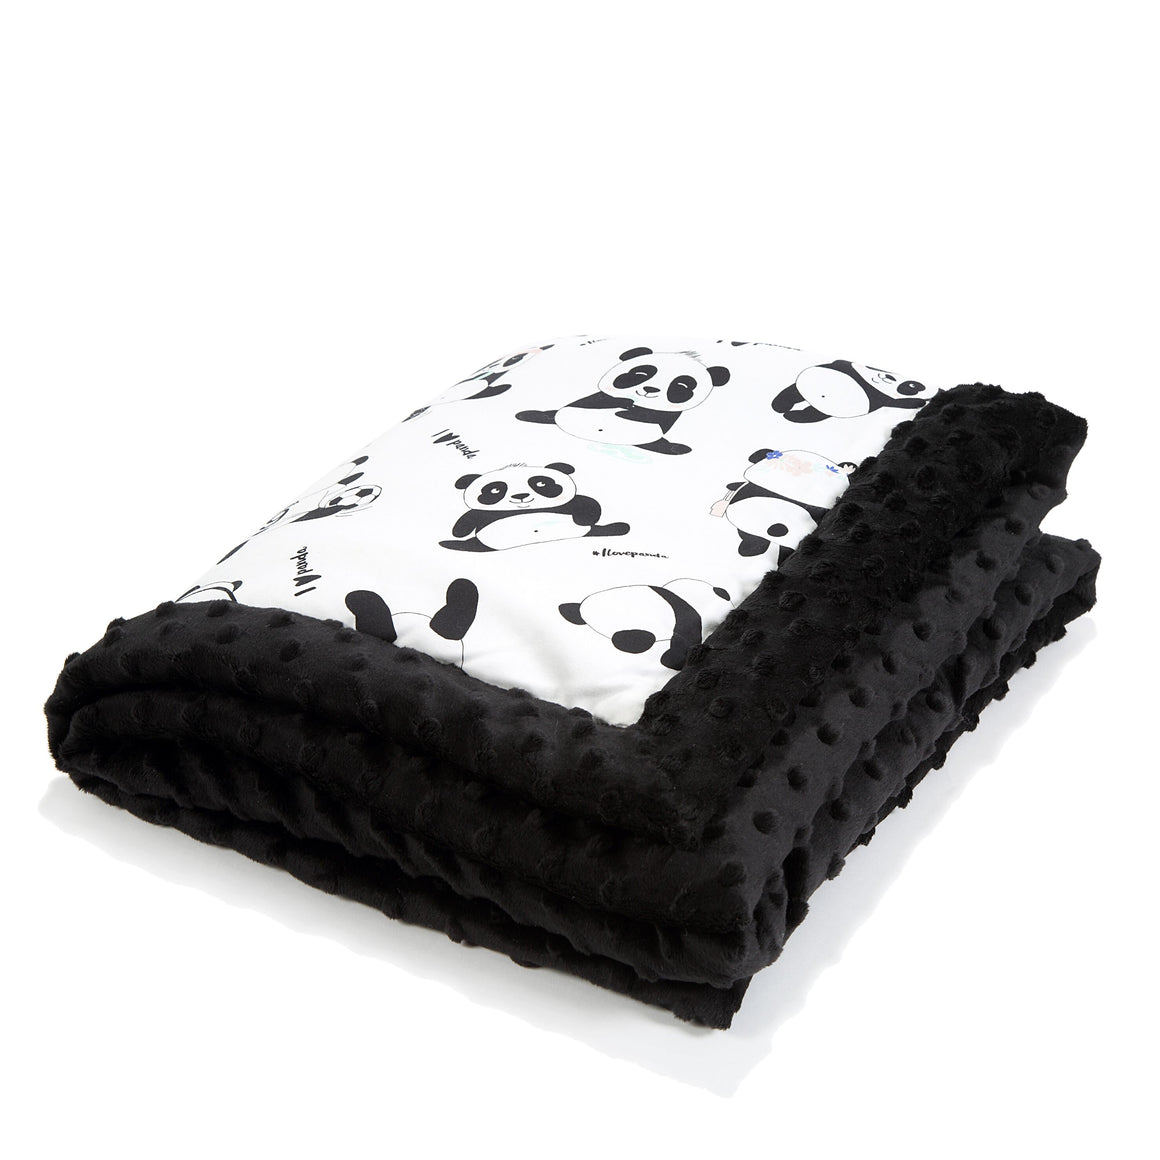 NEWBORN BLANKET peitto - #ilovepanda | Black